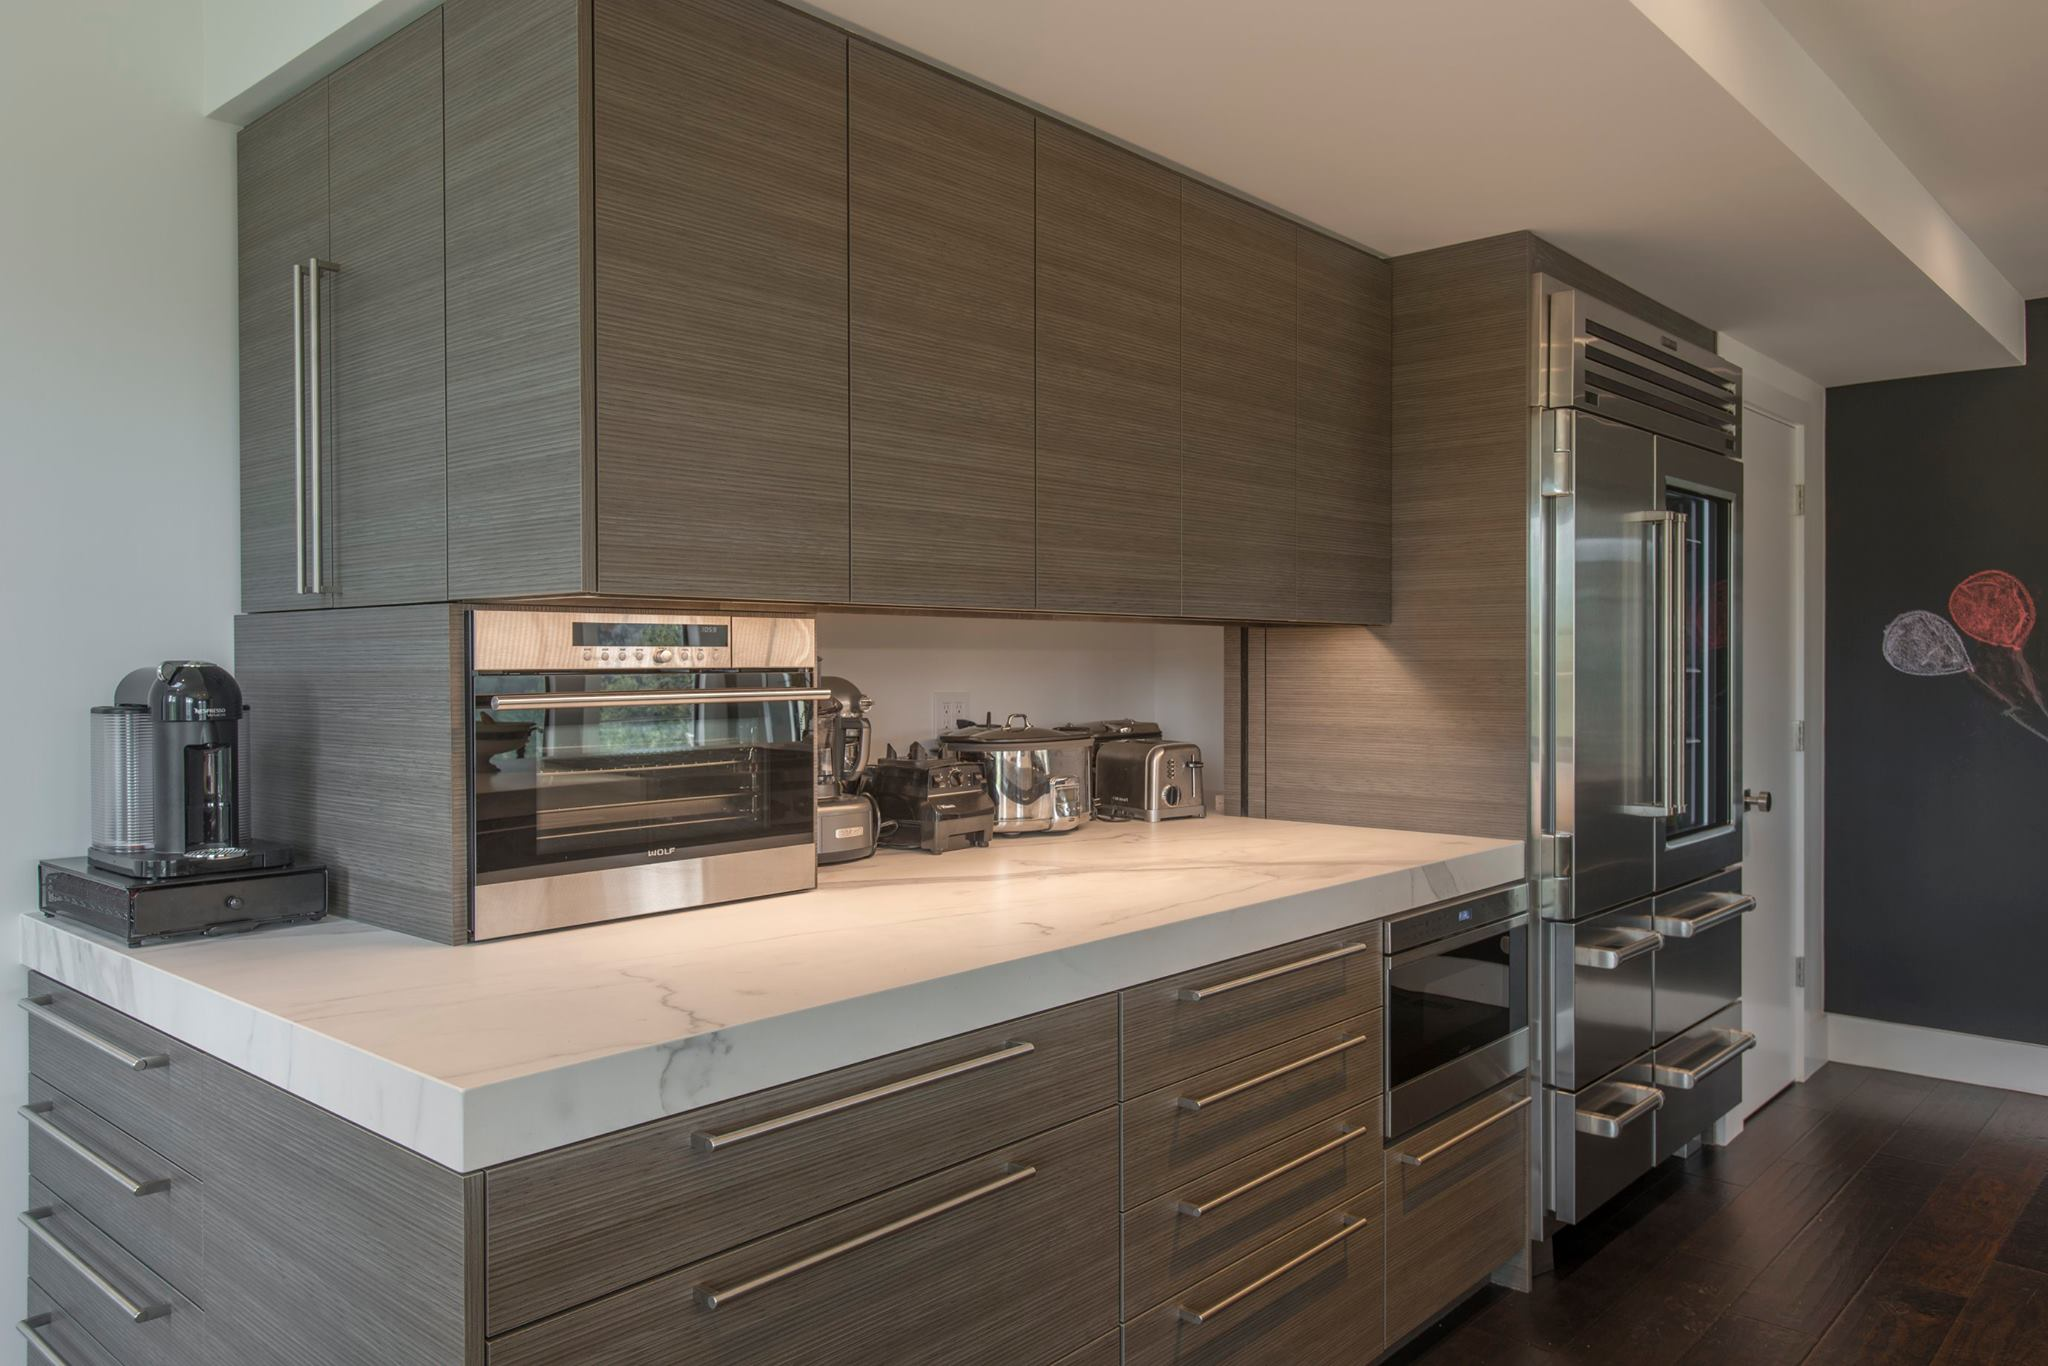 fm-distributing-neolith-classtone-estatuario-and-beton-modern-kitchen-side-coutner-coutner-with-applicances